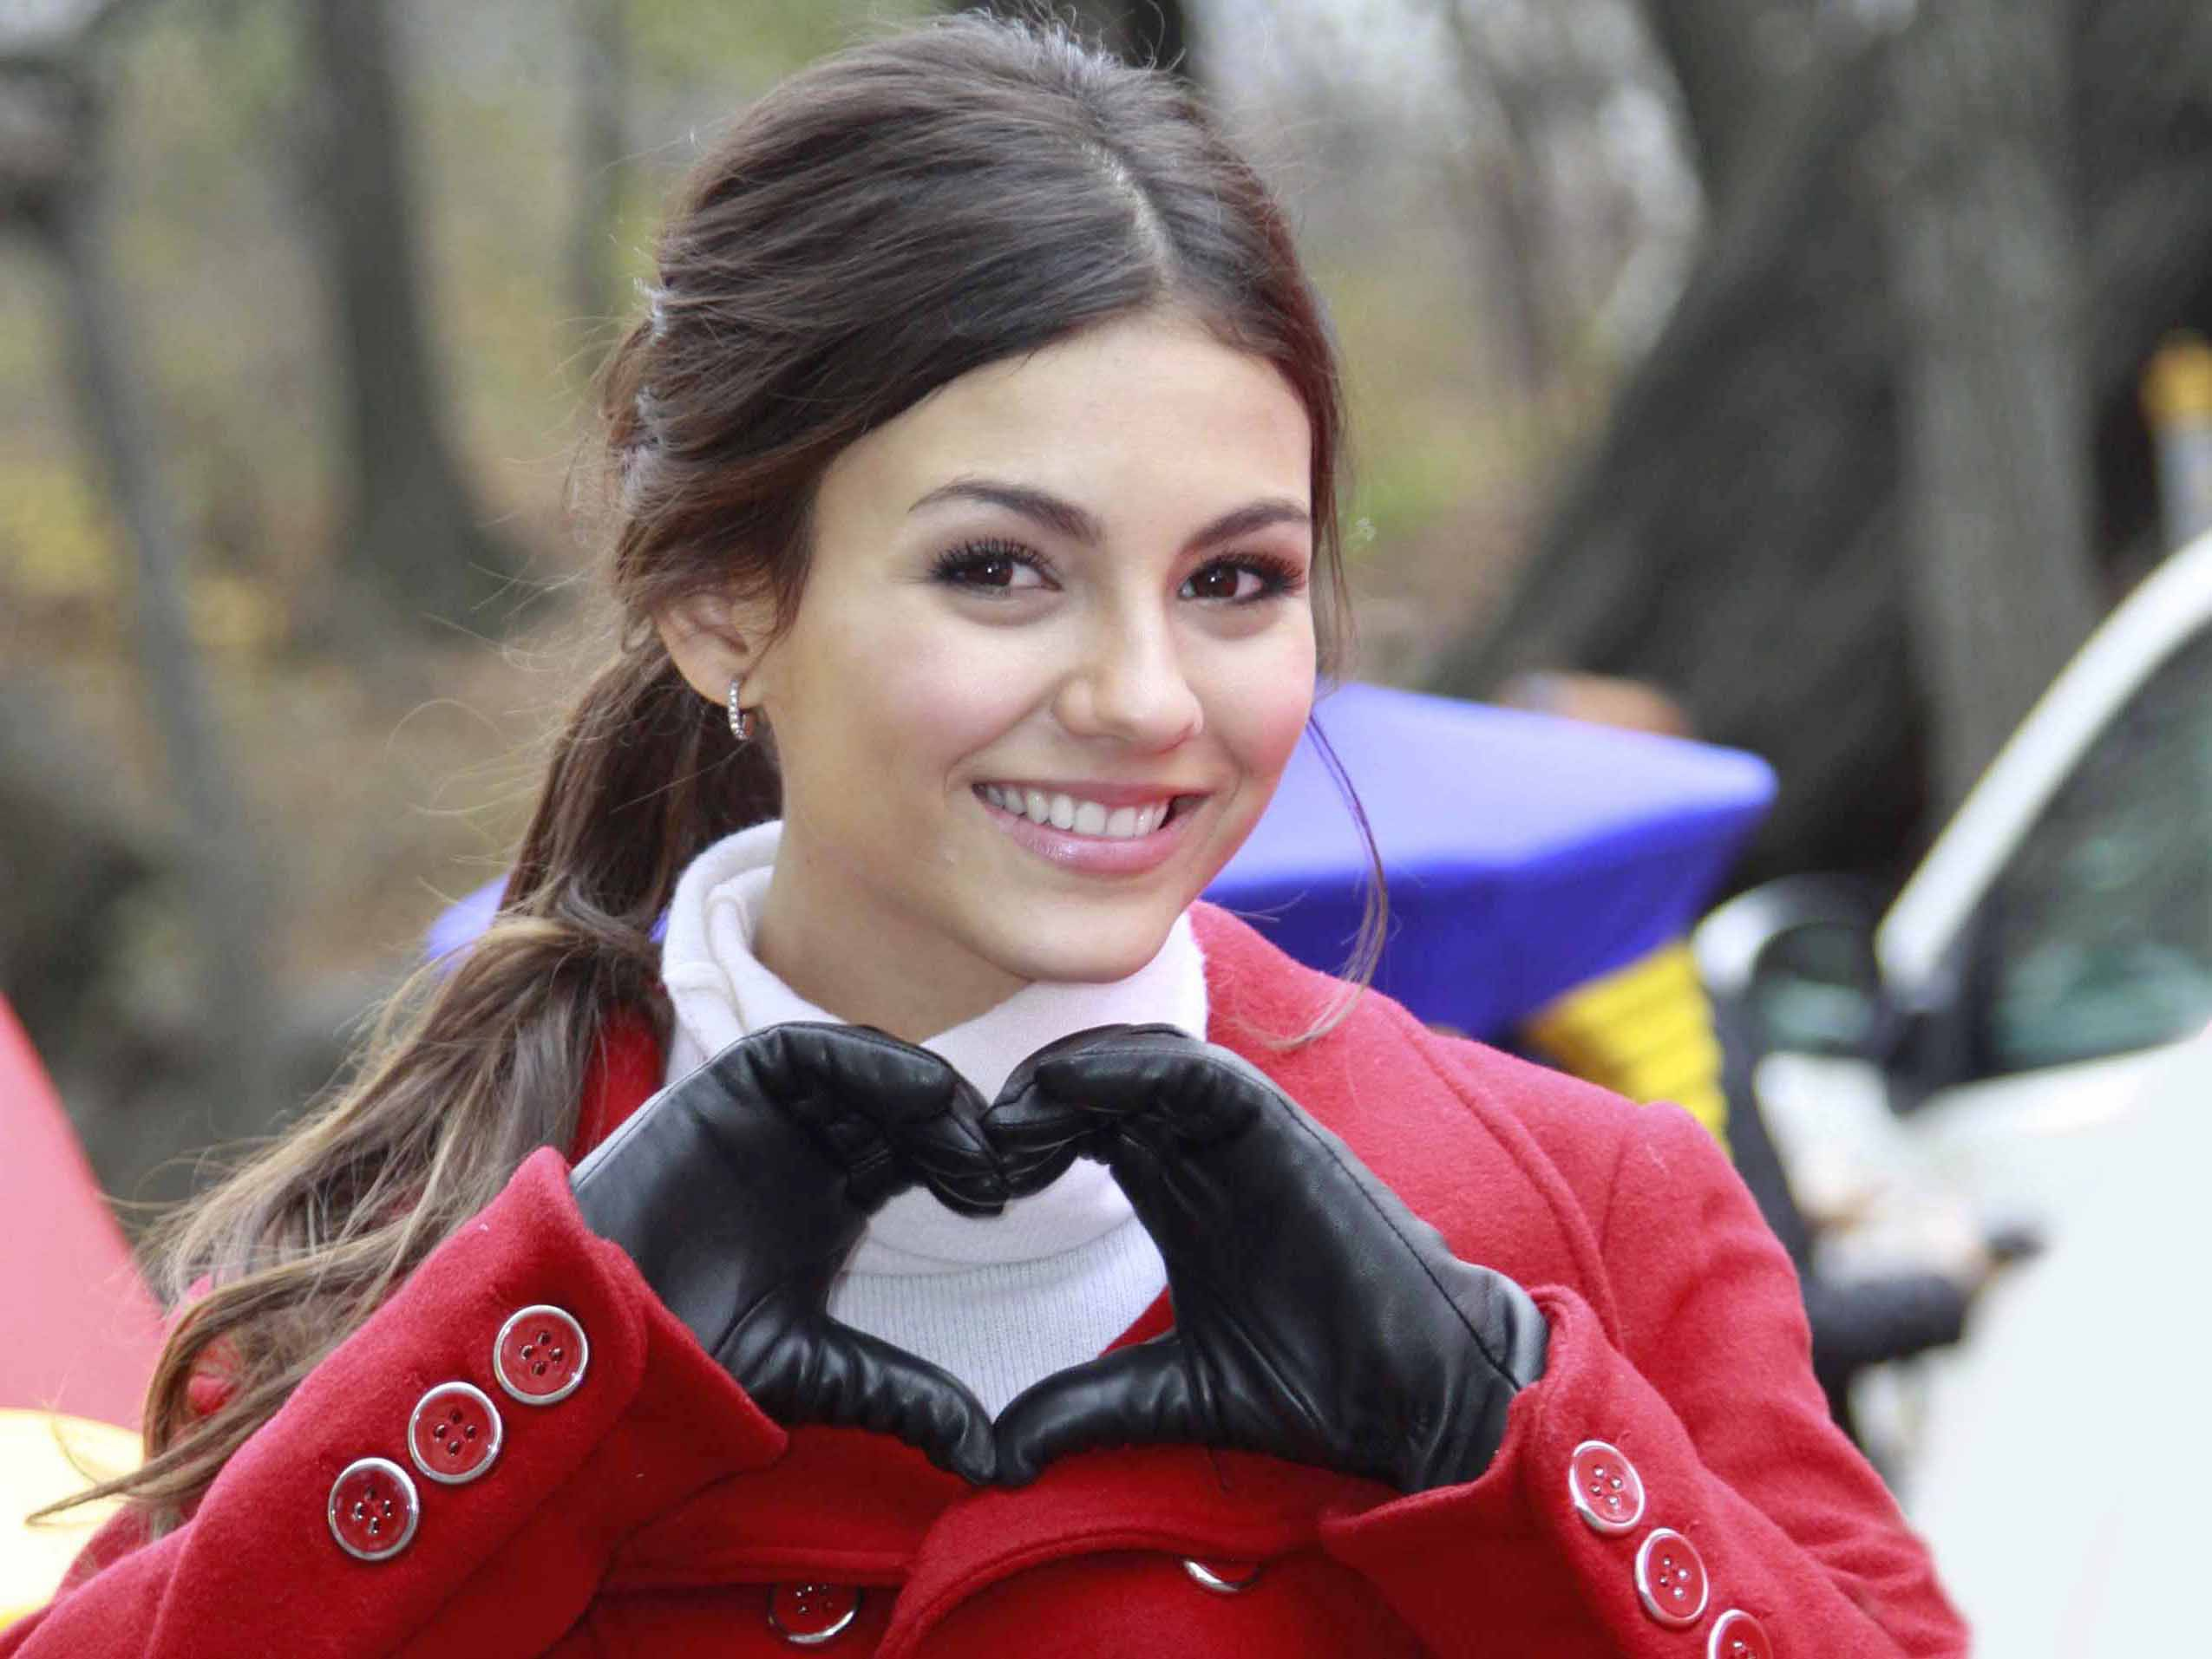 Amazing Victoria Justice Fantastic Hear Symbol Still Background Mobile Free Desktop Hd Wallpaper